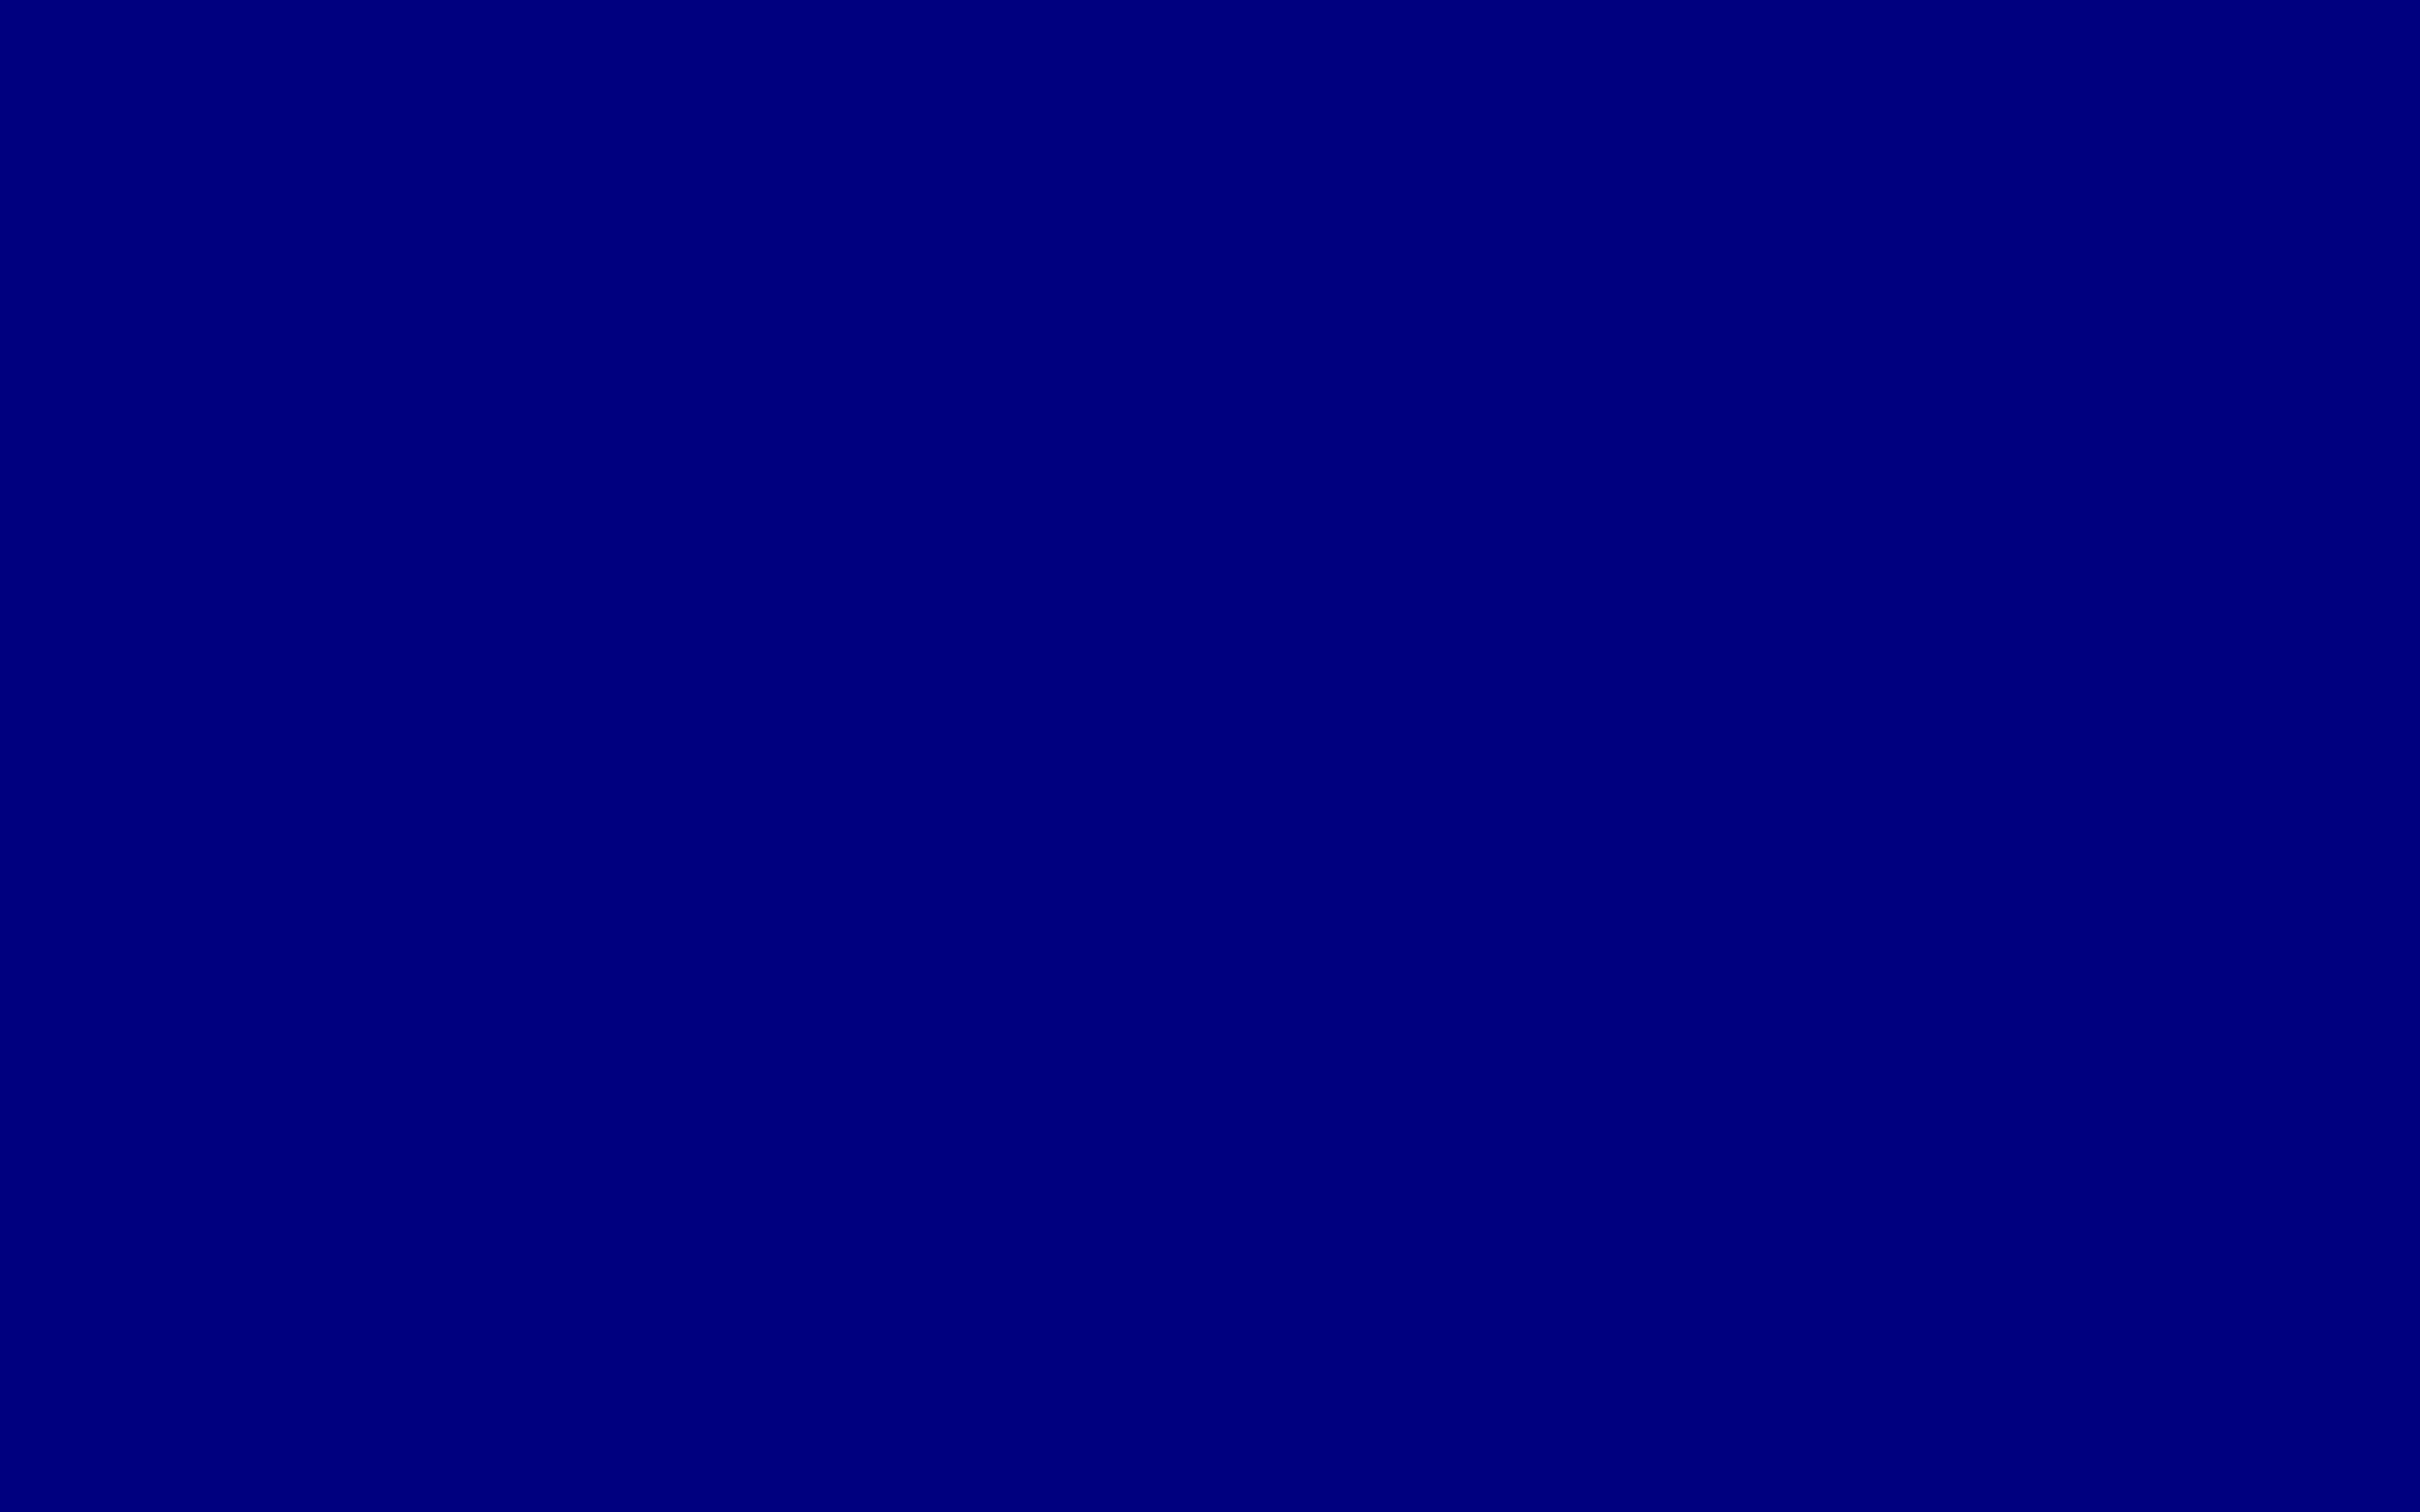 Royal Blue Backgrounds 43 images